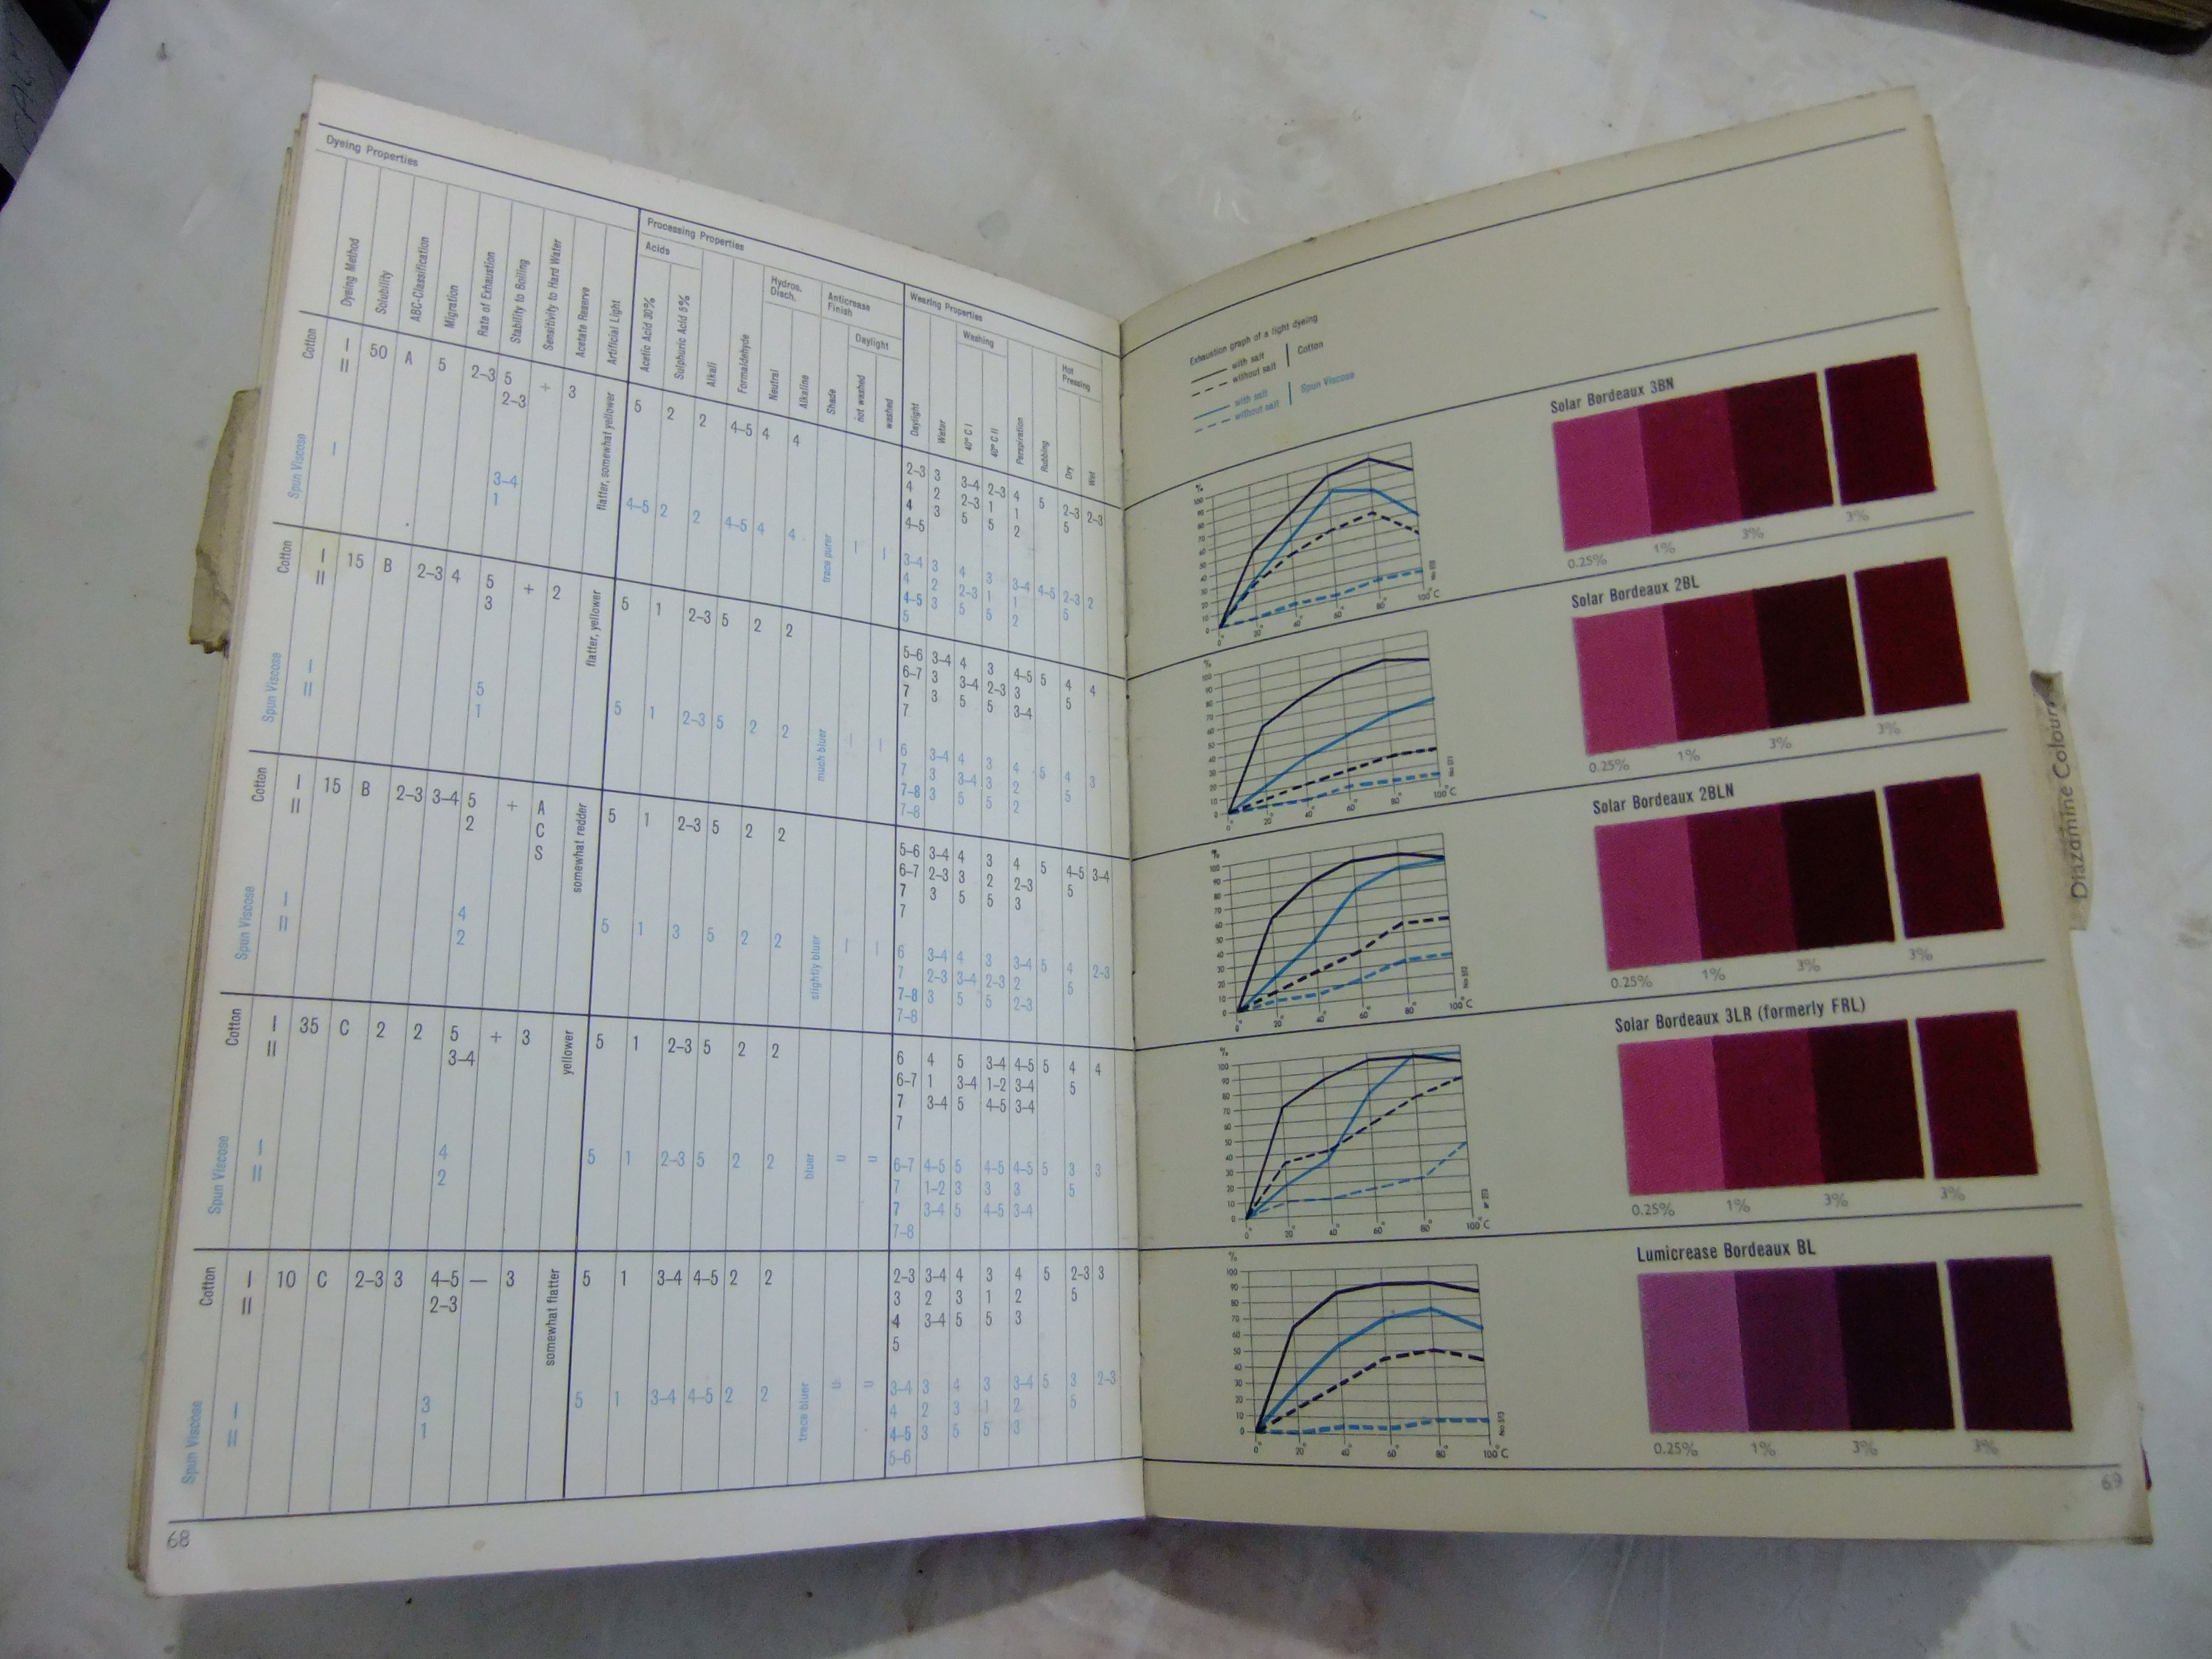 historical dye research - pages from the sansone dye pattern book